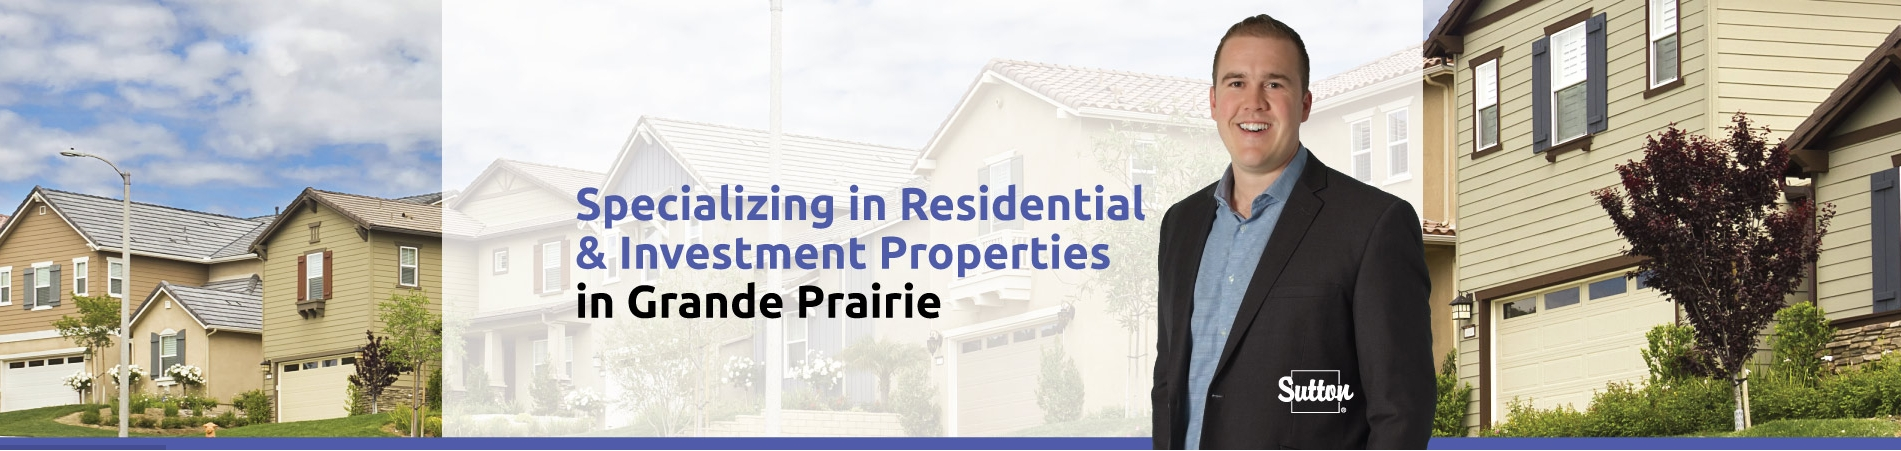 Specializing in Residential & Investment Properties